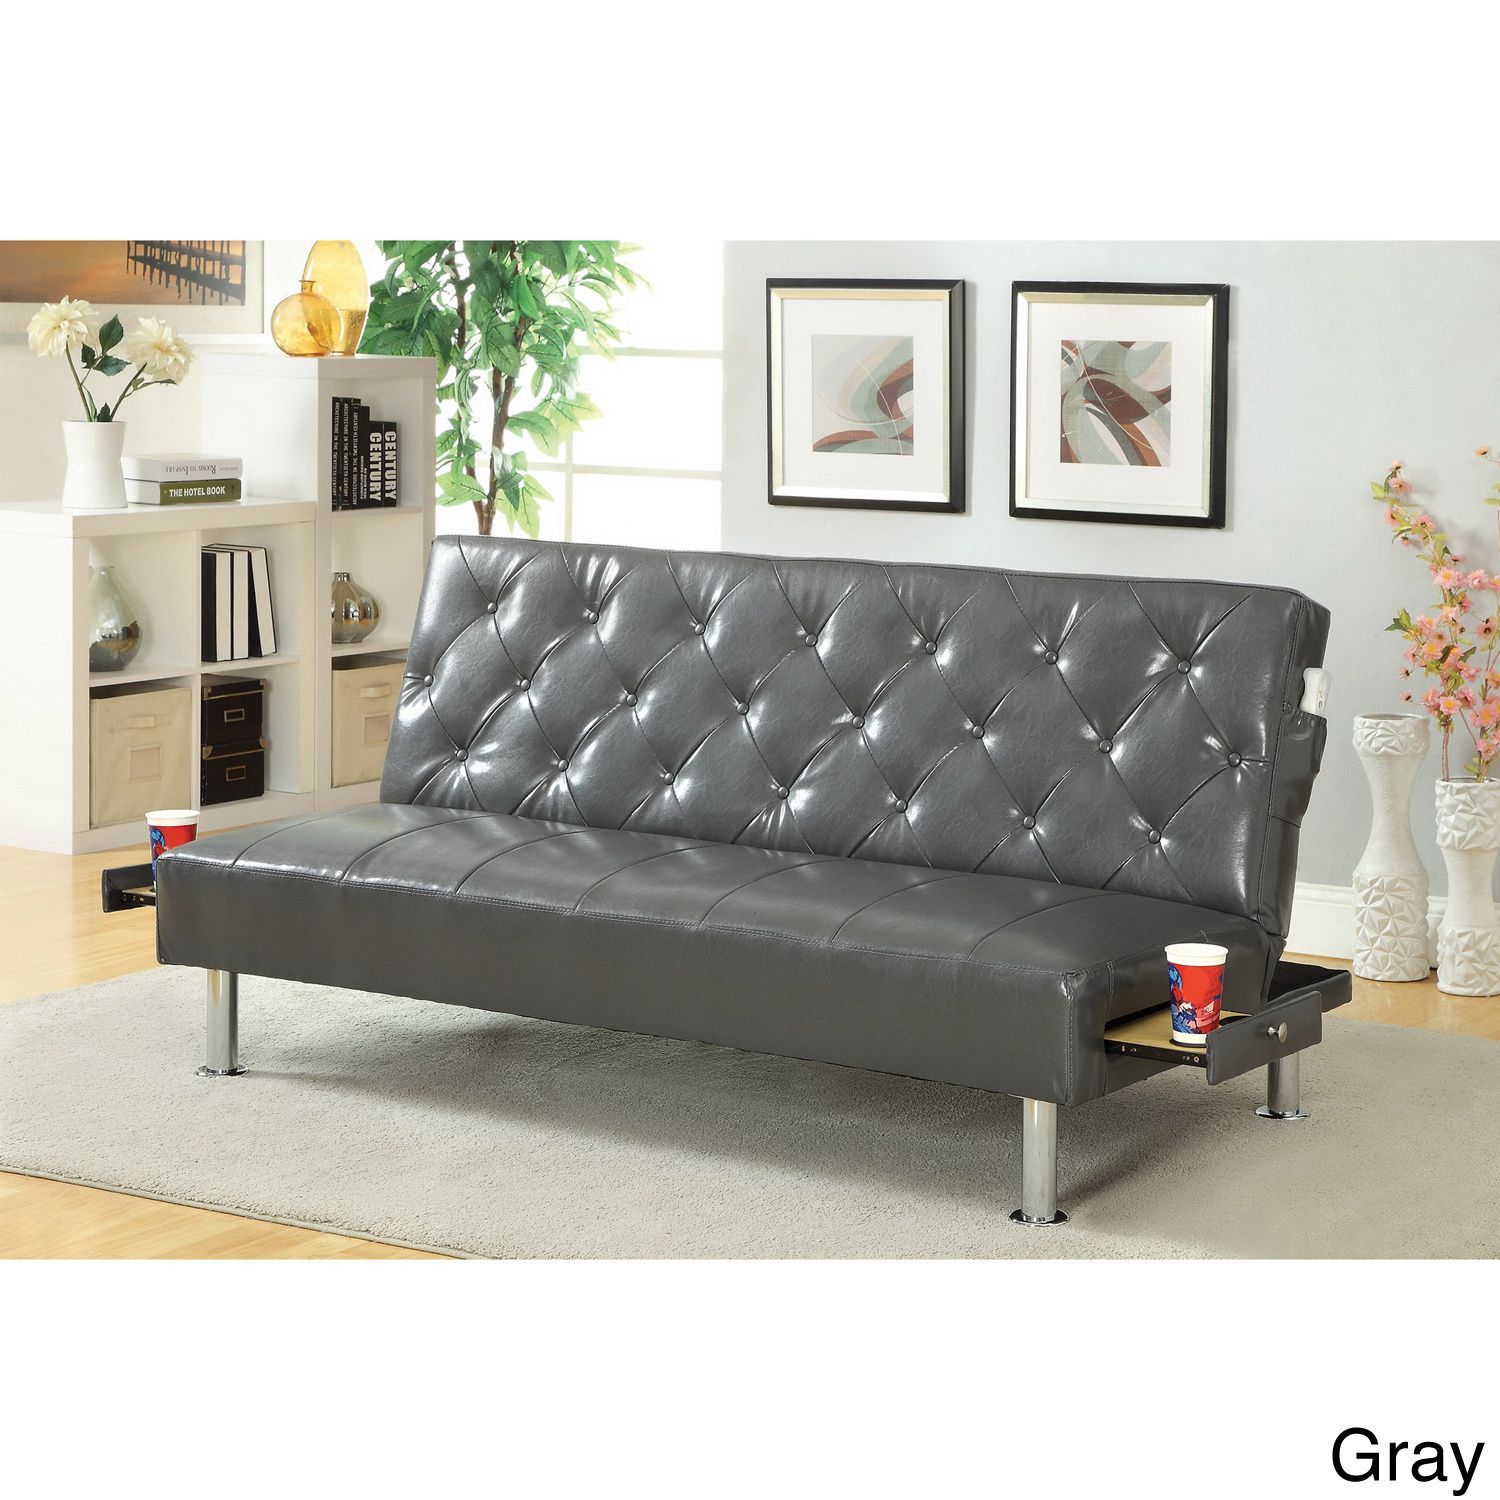 Queen Size Convertible Sofa Bed - Foter